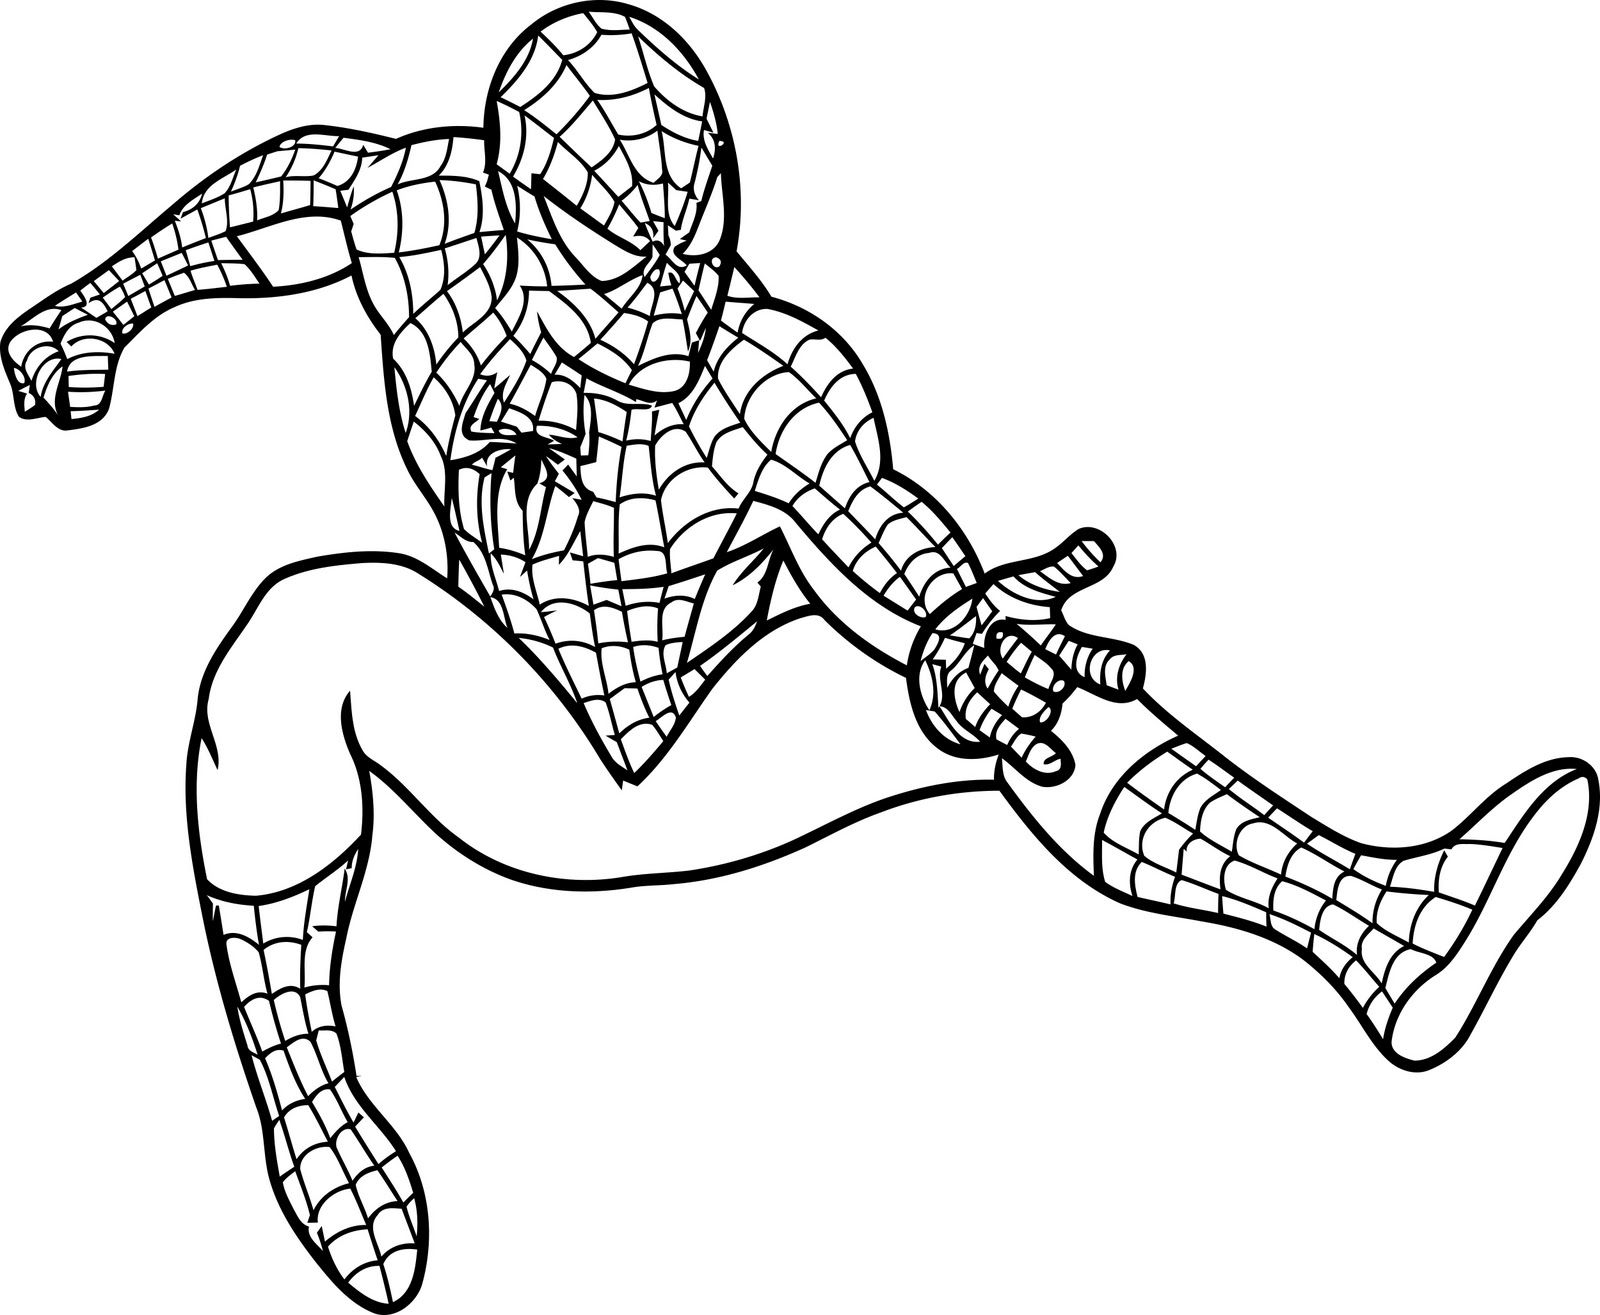 spiderman coloring pages free spiderman coloring pages for kids printable - Kids Free Printable Coloring Pages